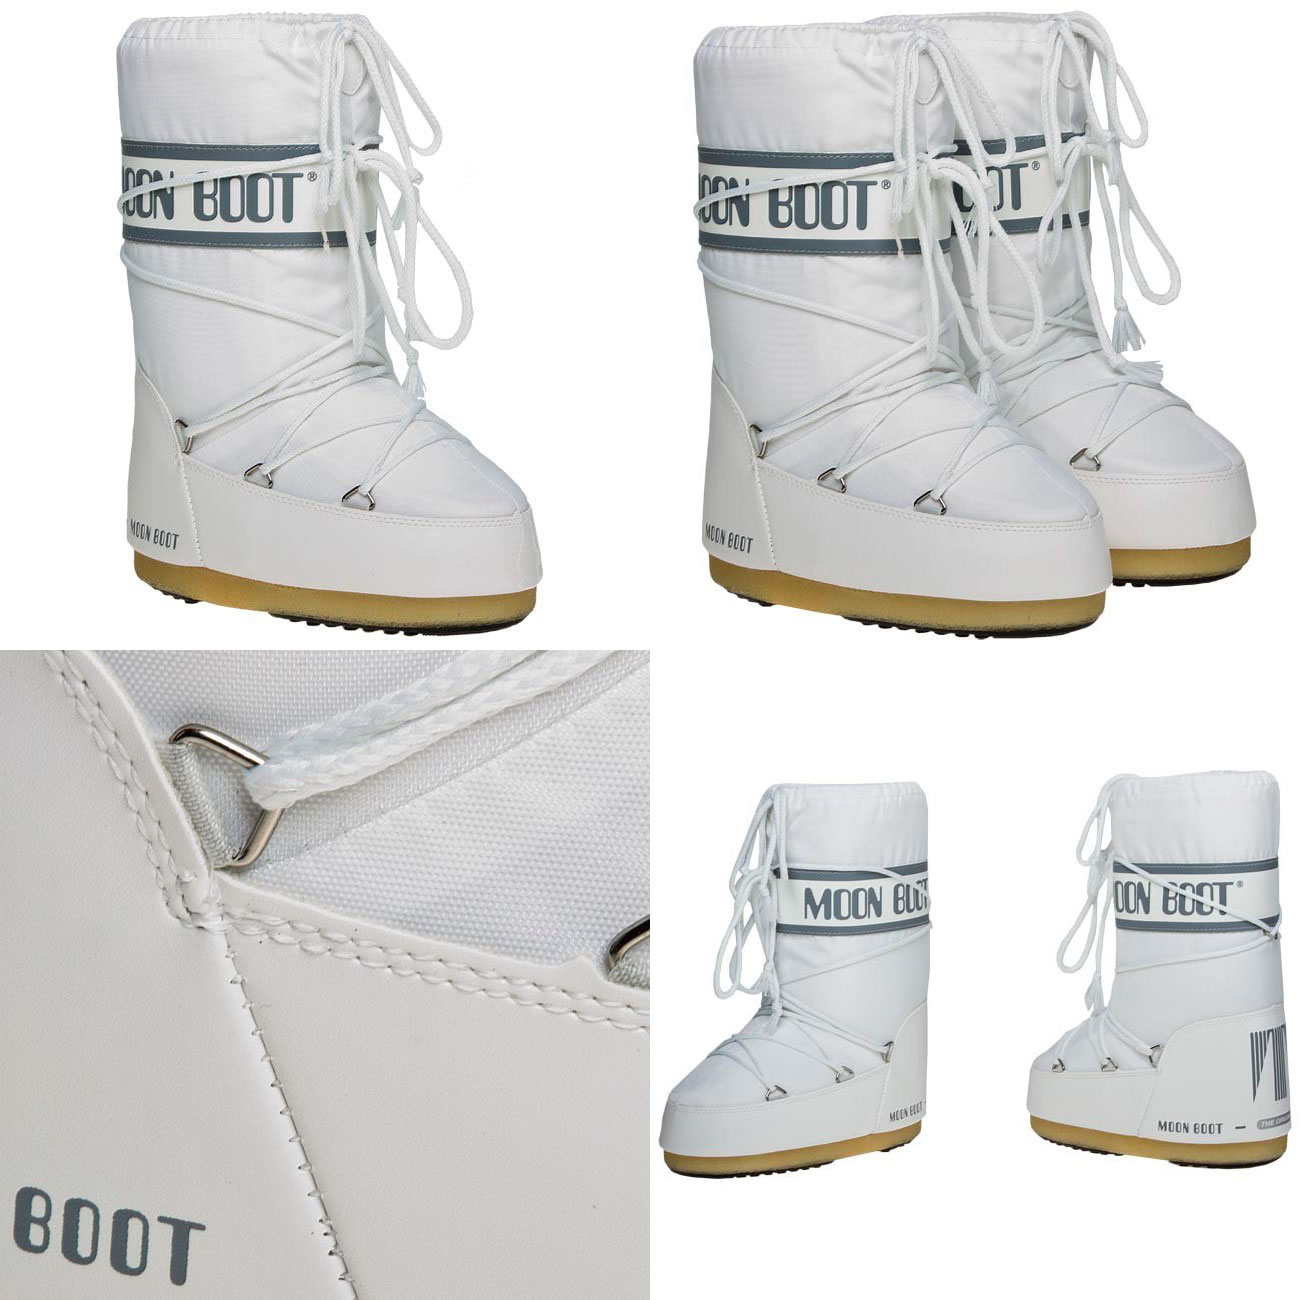 http://www.moonboot.net.ua/images/upload/white_nylon-31-34-moonboot.net.ua.jpg